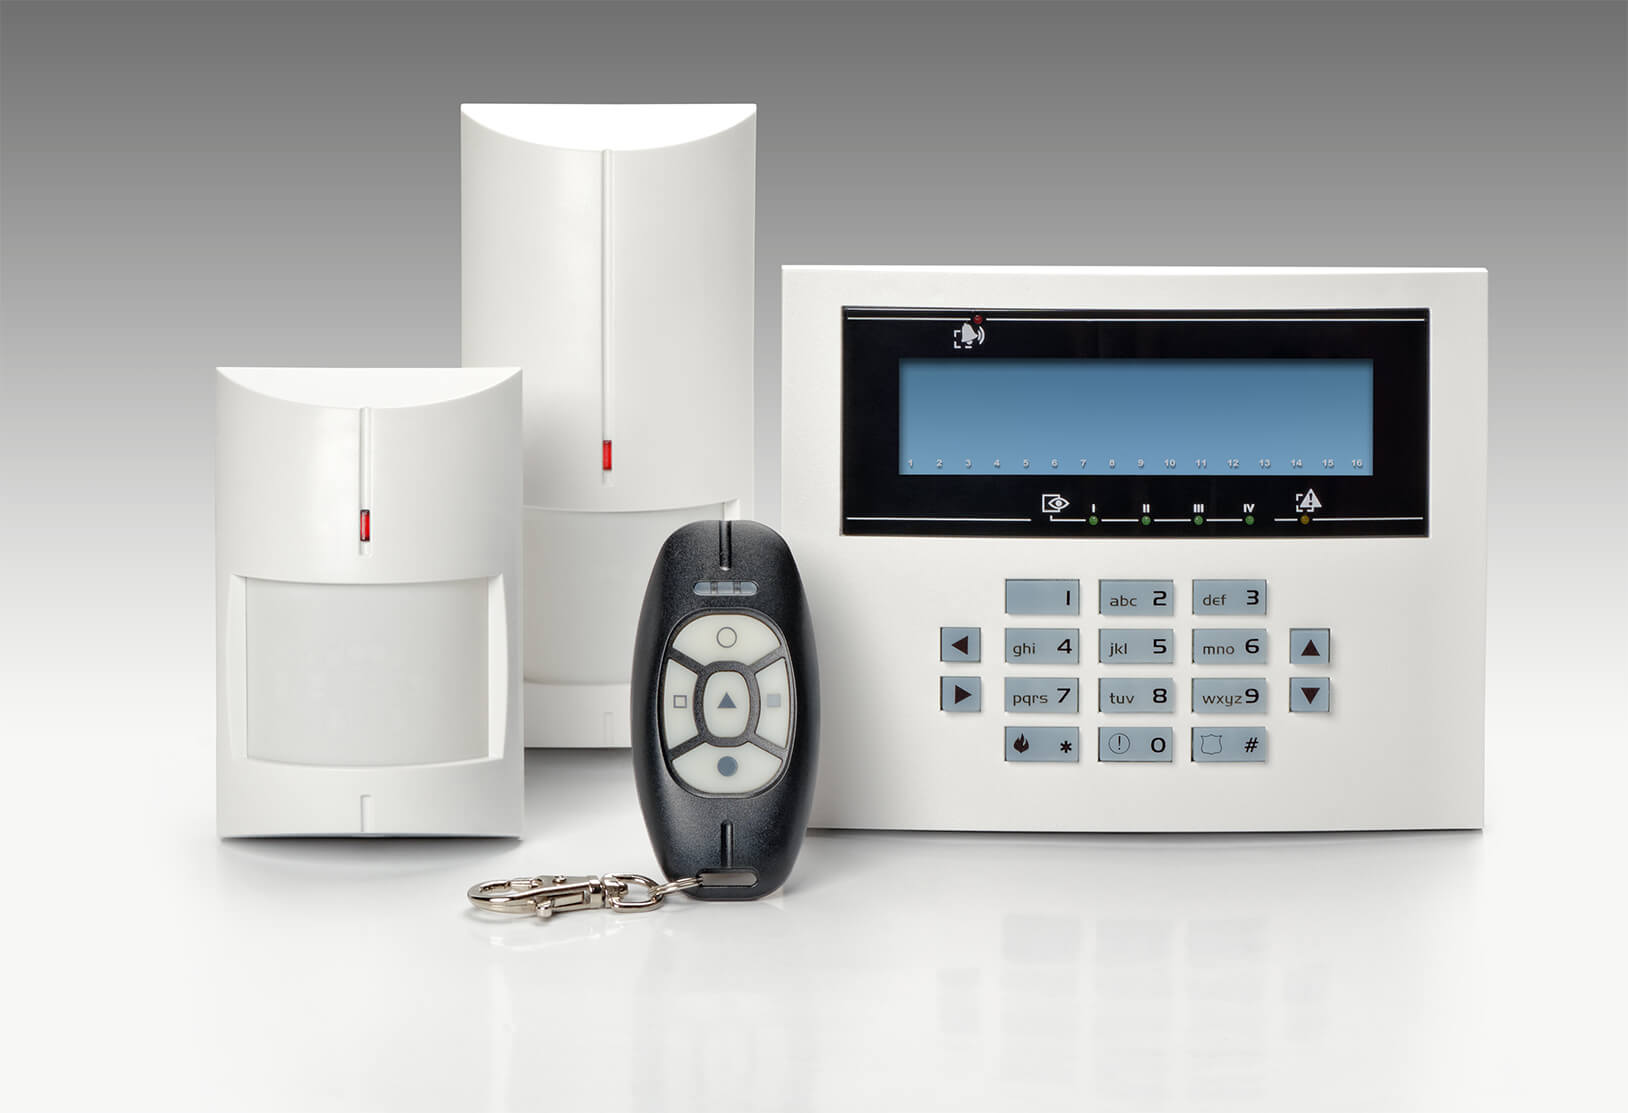 Commercial Burglar Alarms For Business in South East London  - Local South East London burglar alarm company.Call 02078872244 - Dedicated to Safety & Security. Companies, shops and homes ..